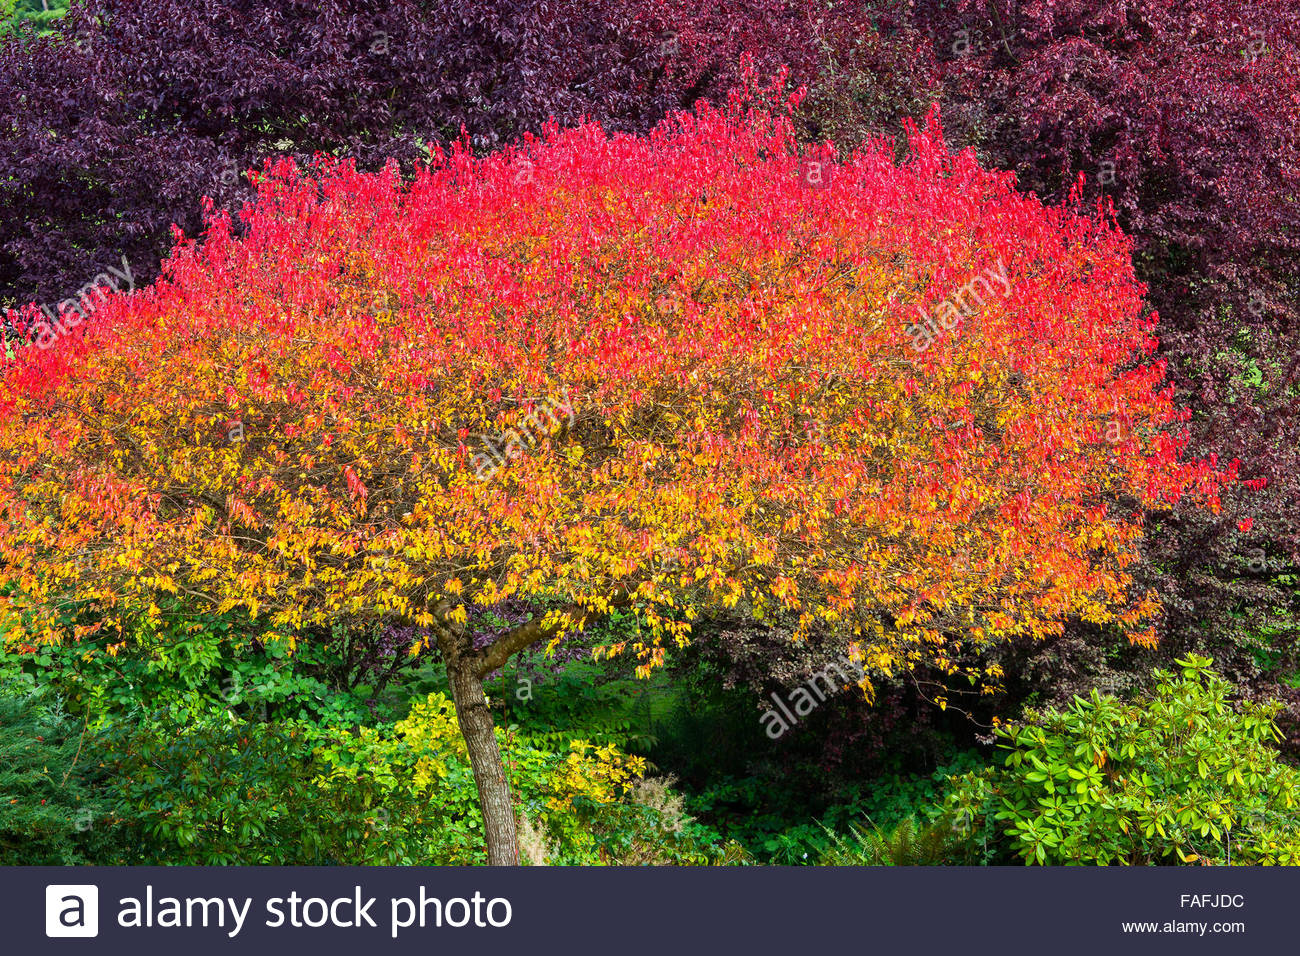 A deciduous tree is colored like a rainbow as autumn begins to set in in Snohomish County, Washington. - Stock Image